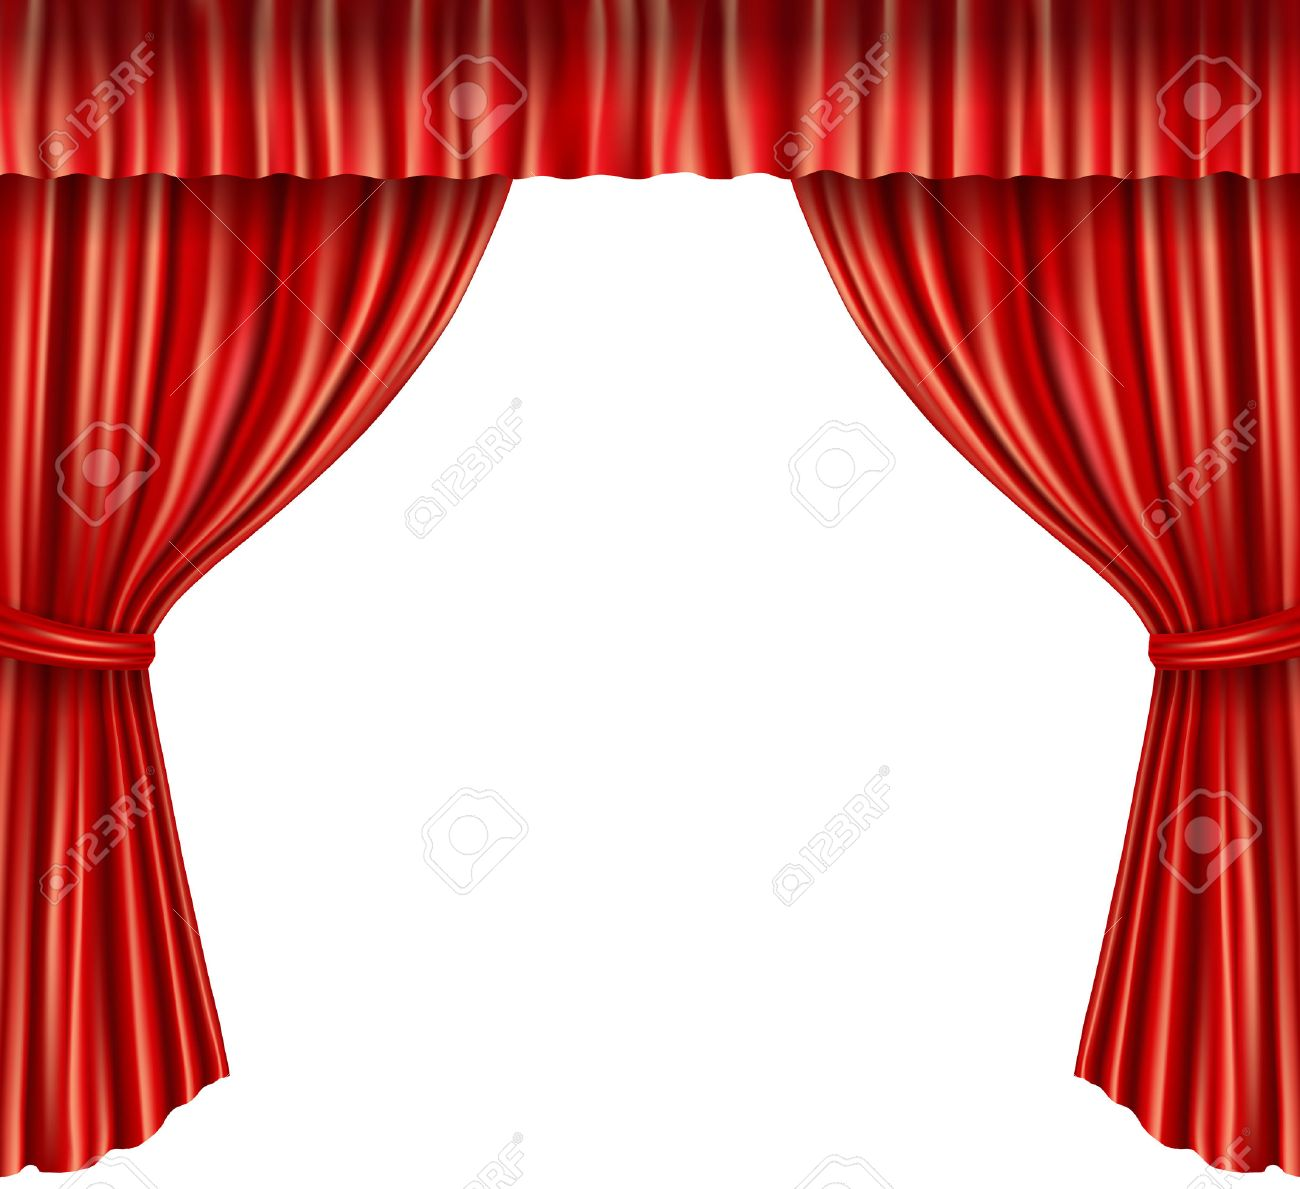 Red velvet curtains stage - Theater Stage Red Velvet Open Retro Style Curtain Isolated On White Background Vector Illustration Stock Vector